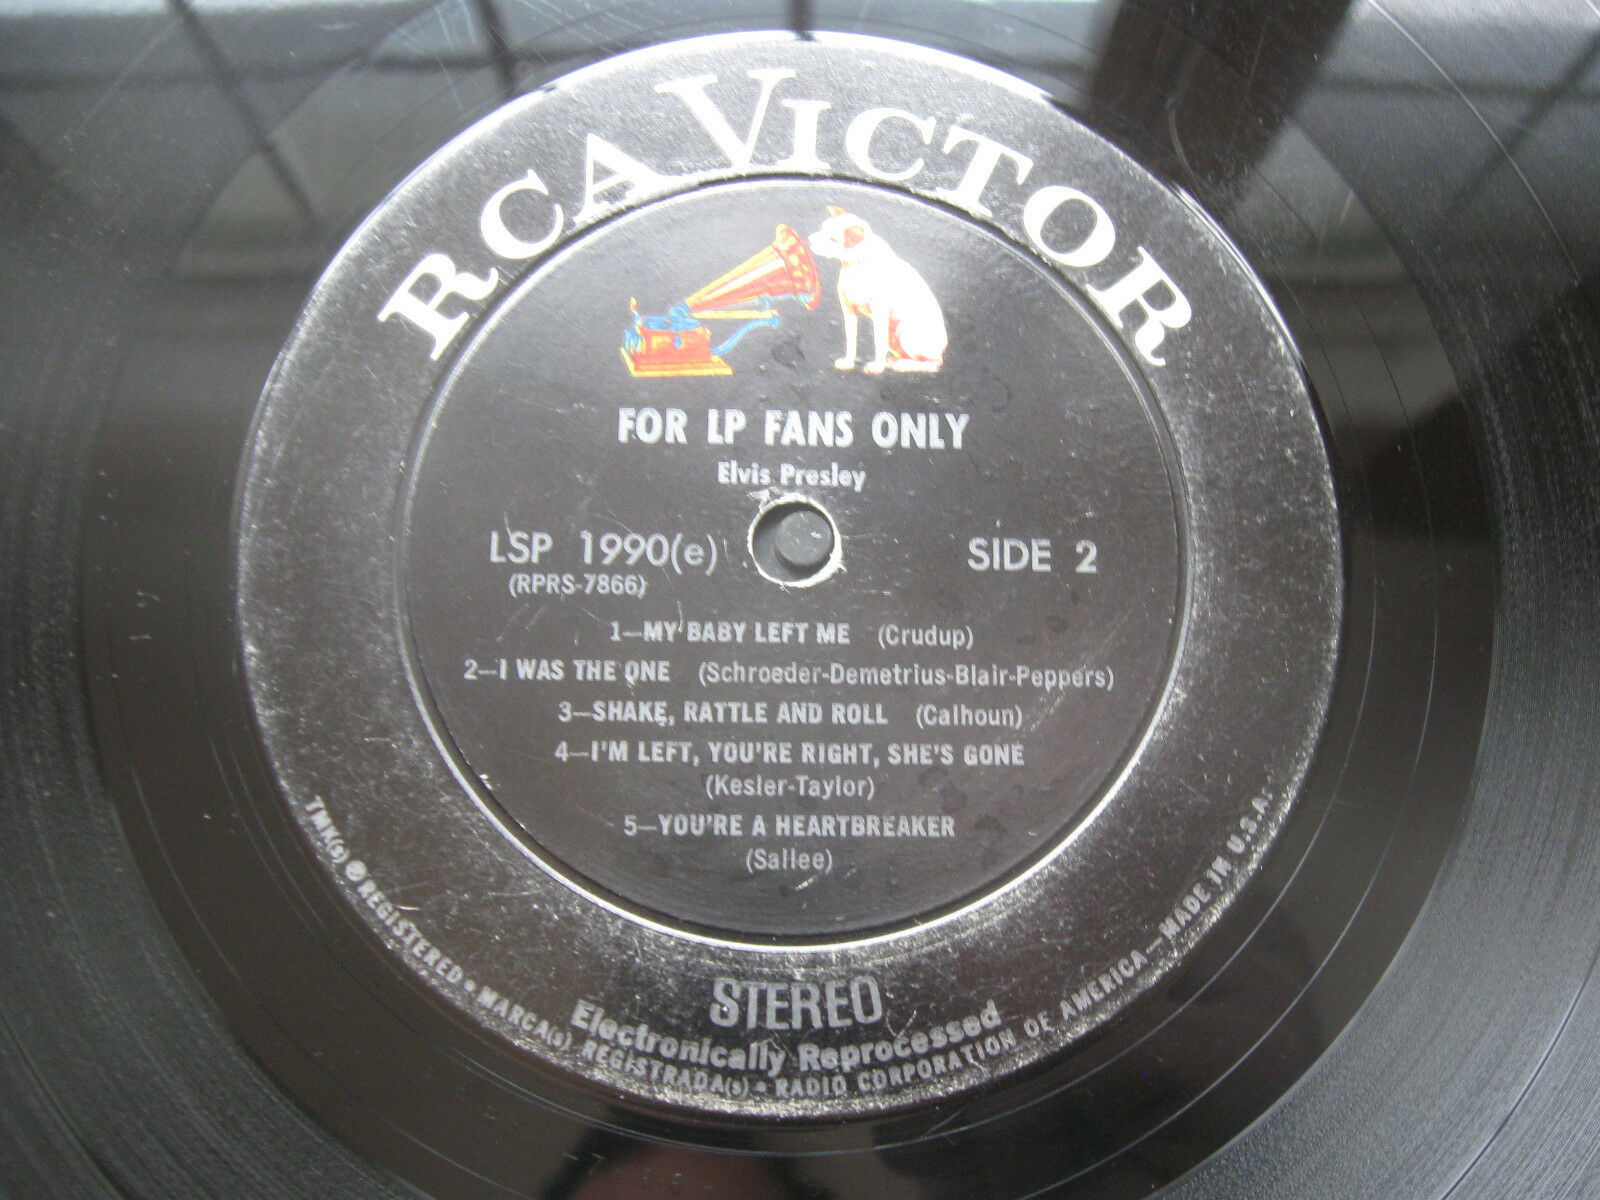 Elvis Presley For LP Fans Only RCA LSP-1990e Stereo Vinyl Record LP RARE Version image 5